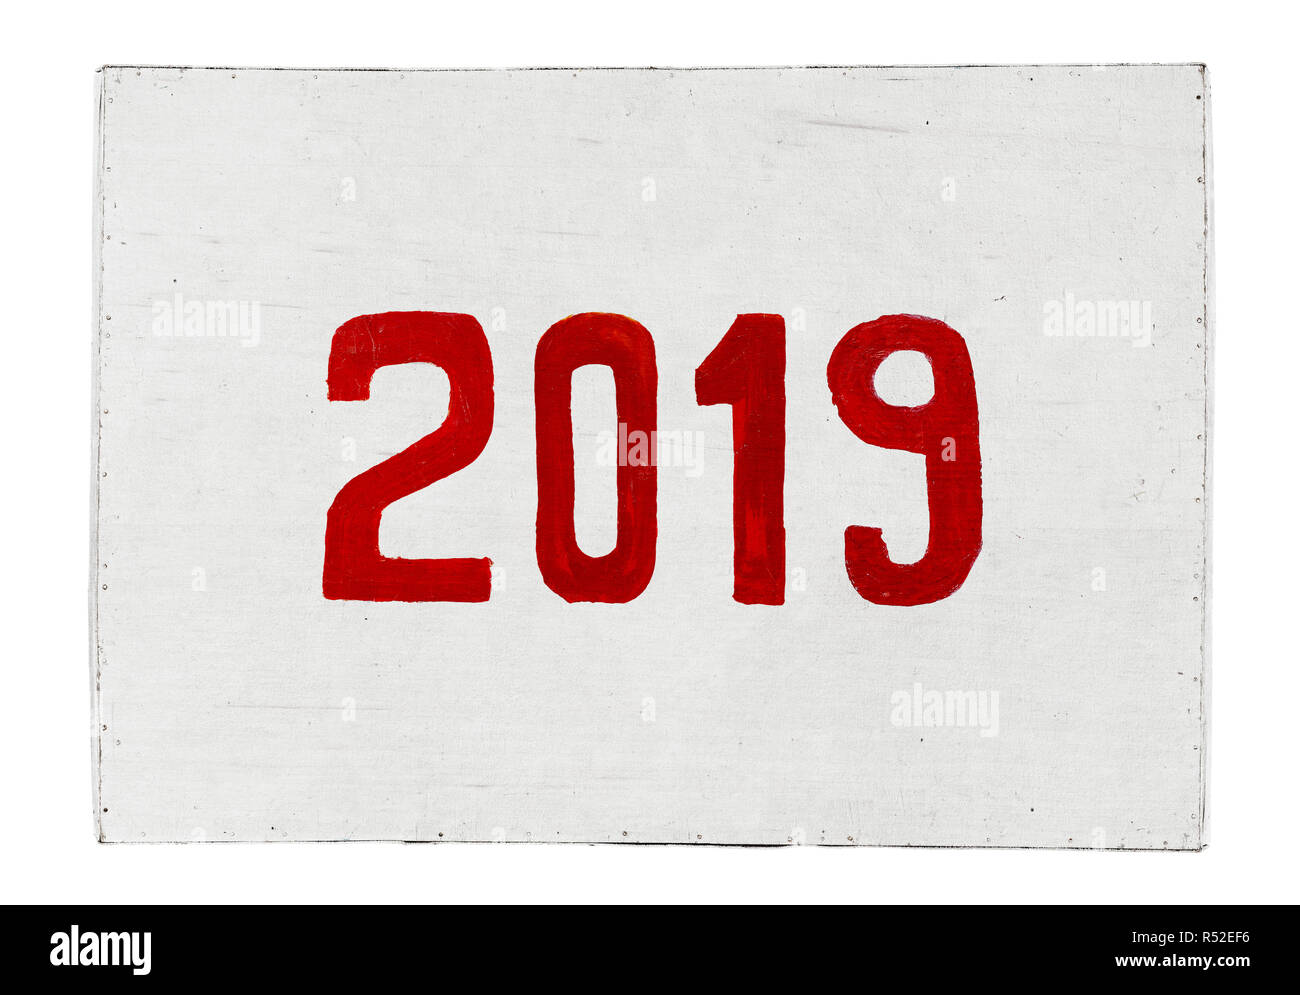 New year 2019 painted on plywood board. Year of the Pig Stock Photo